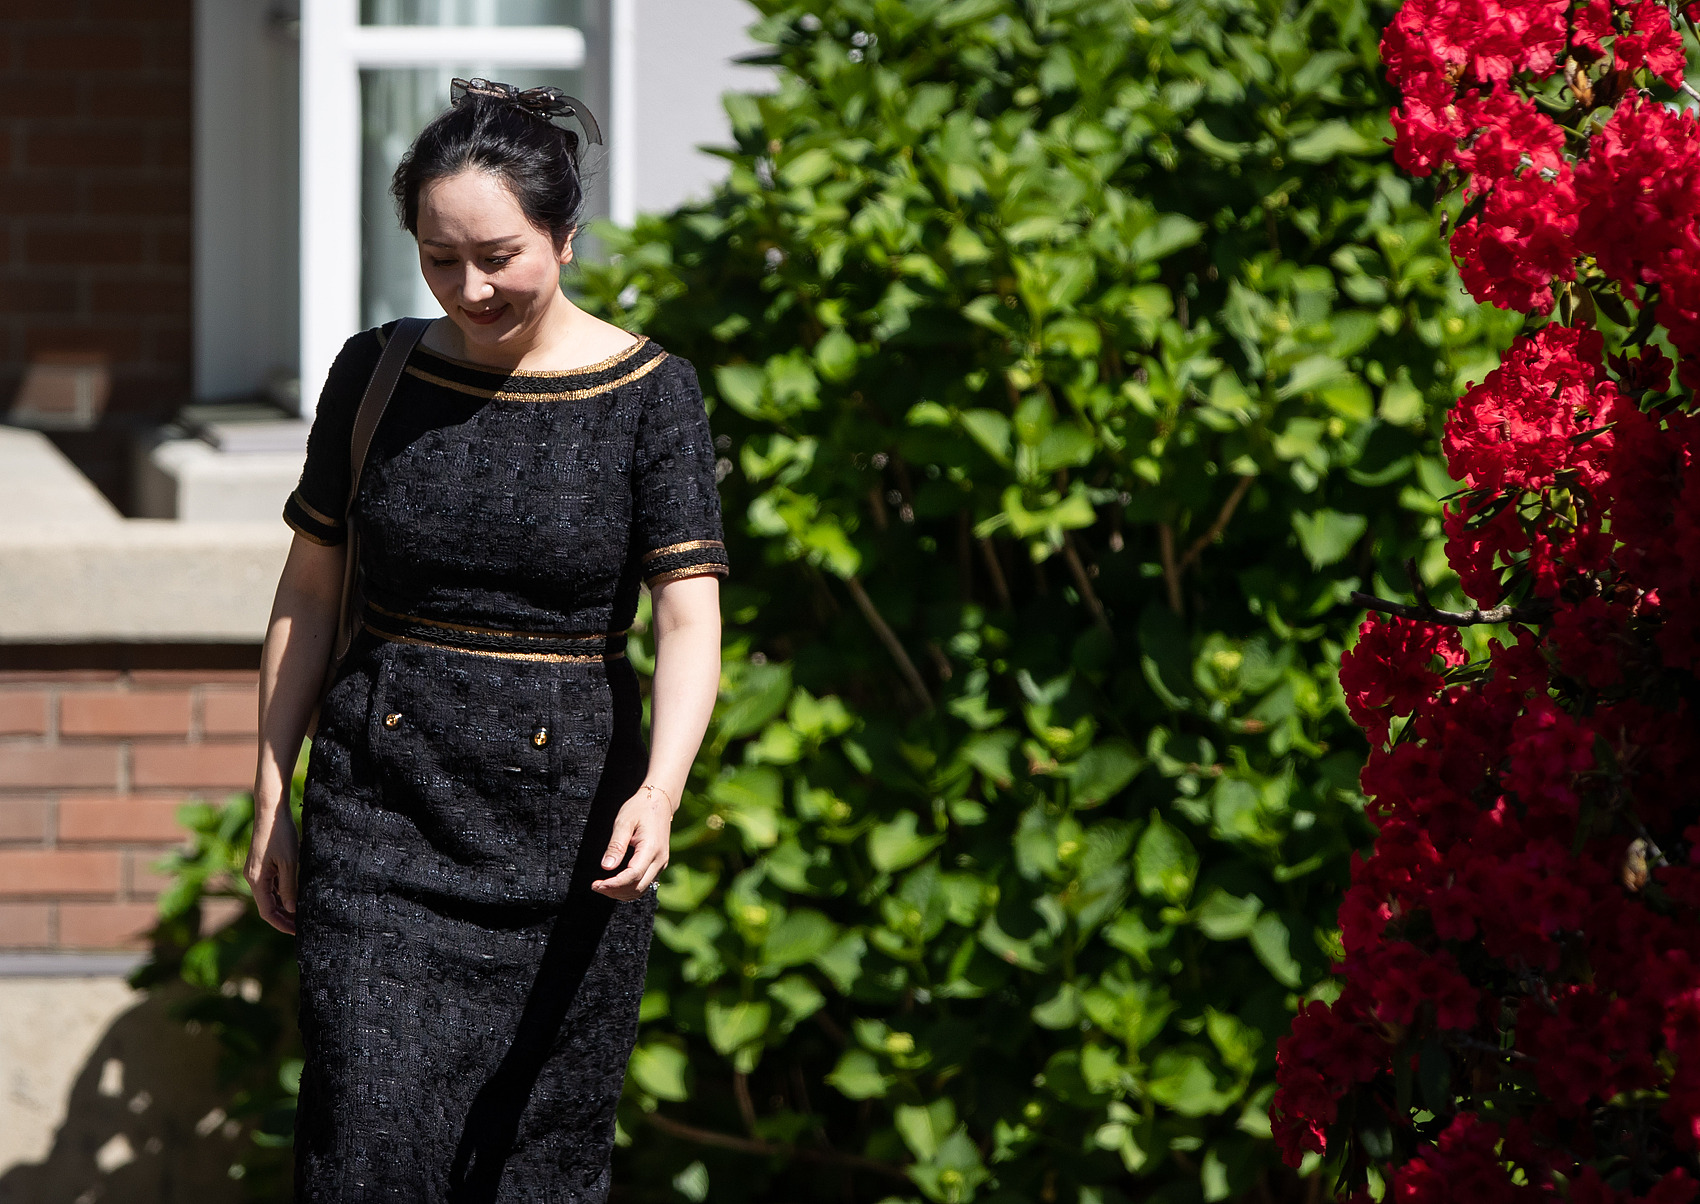 China slams Canada's role as US 'accomplice' in Huawei CFO case